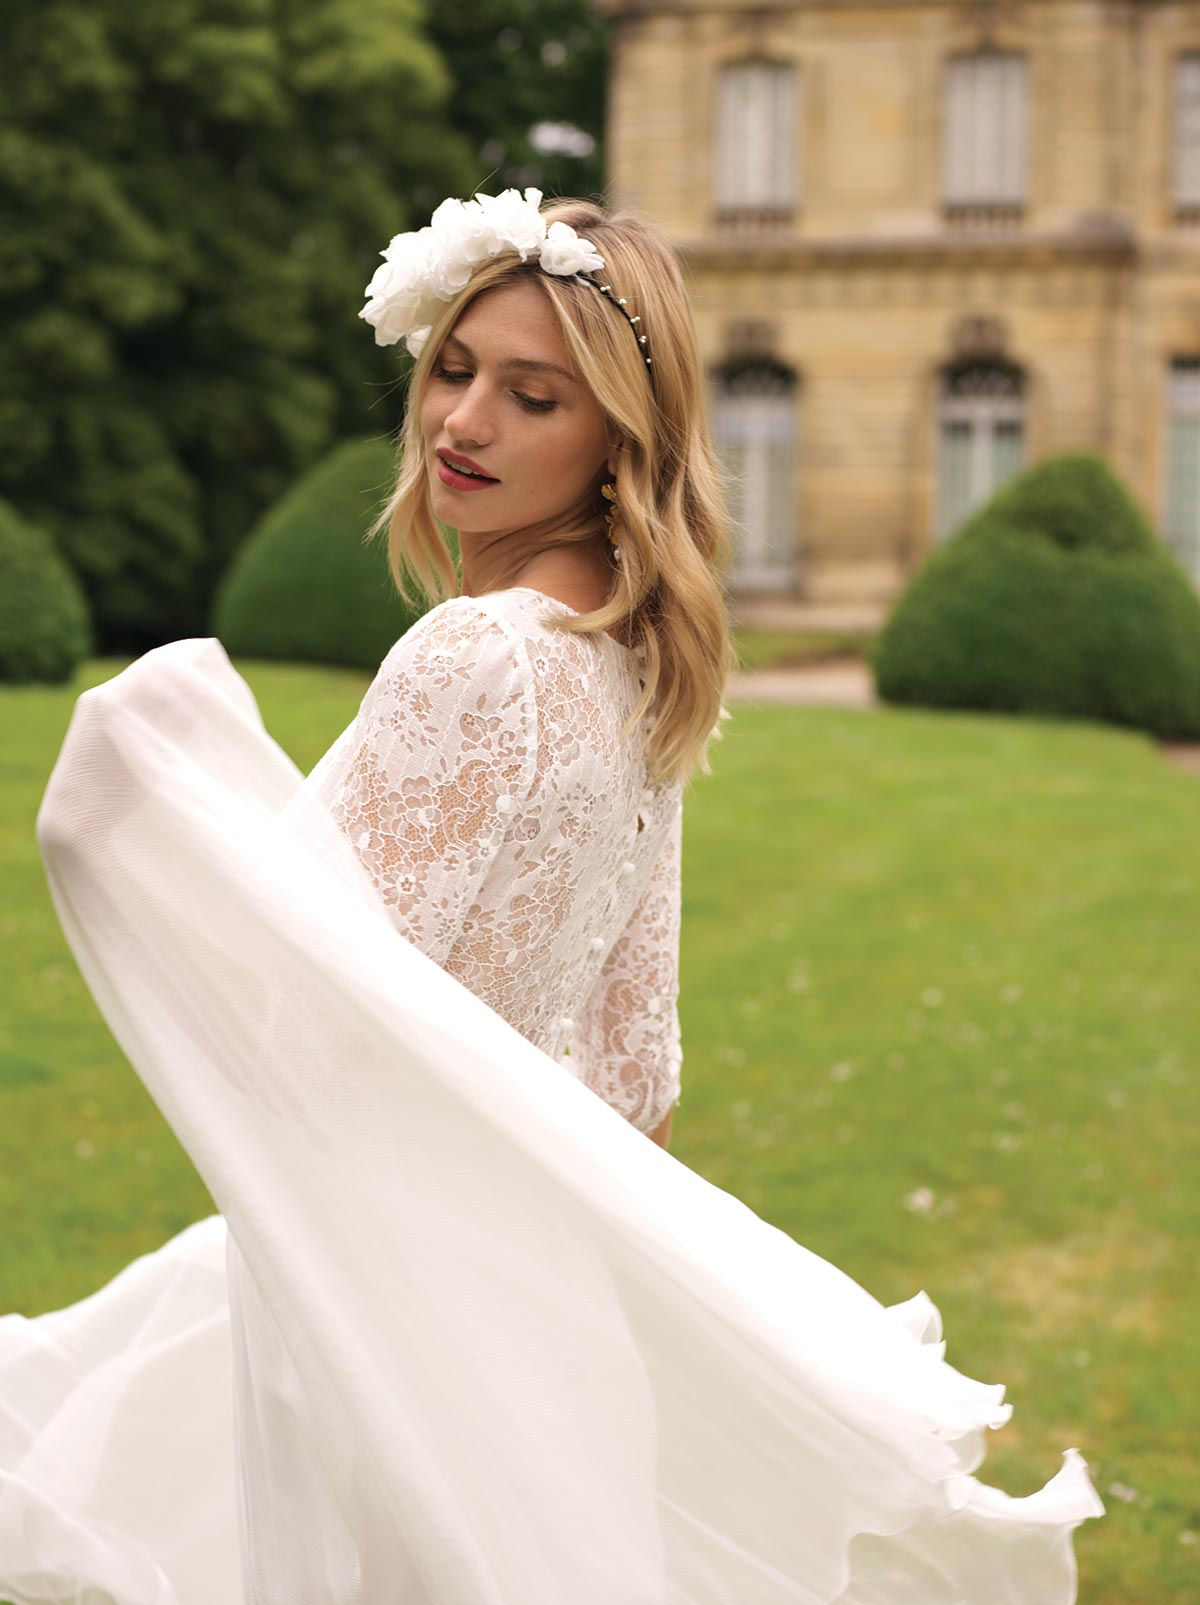 jacynthe-detail-ambiance-marie-laporte-collection-2020